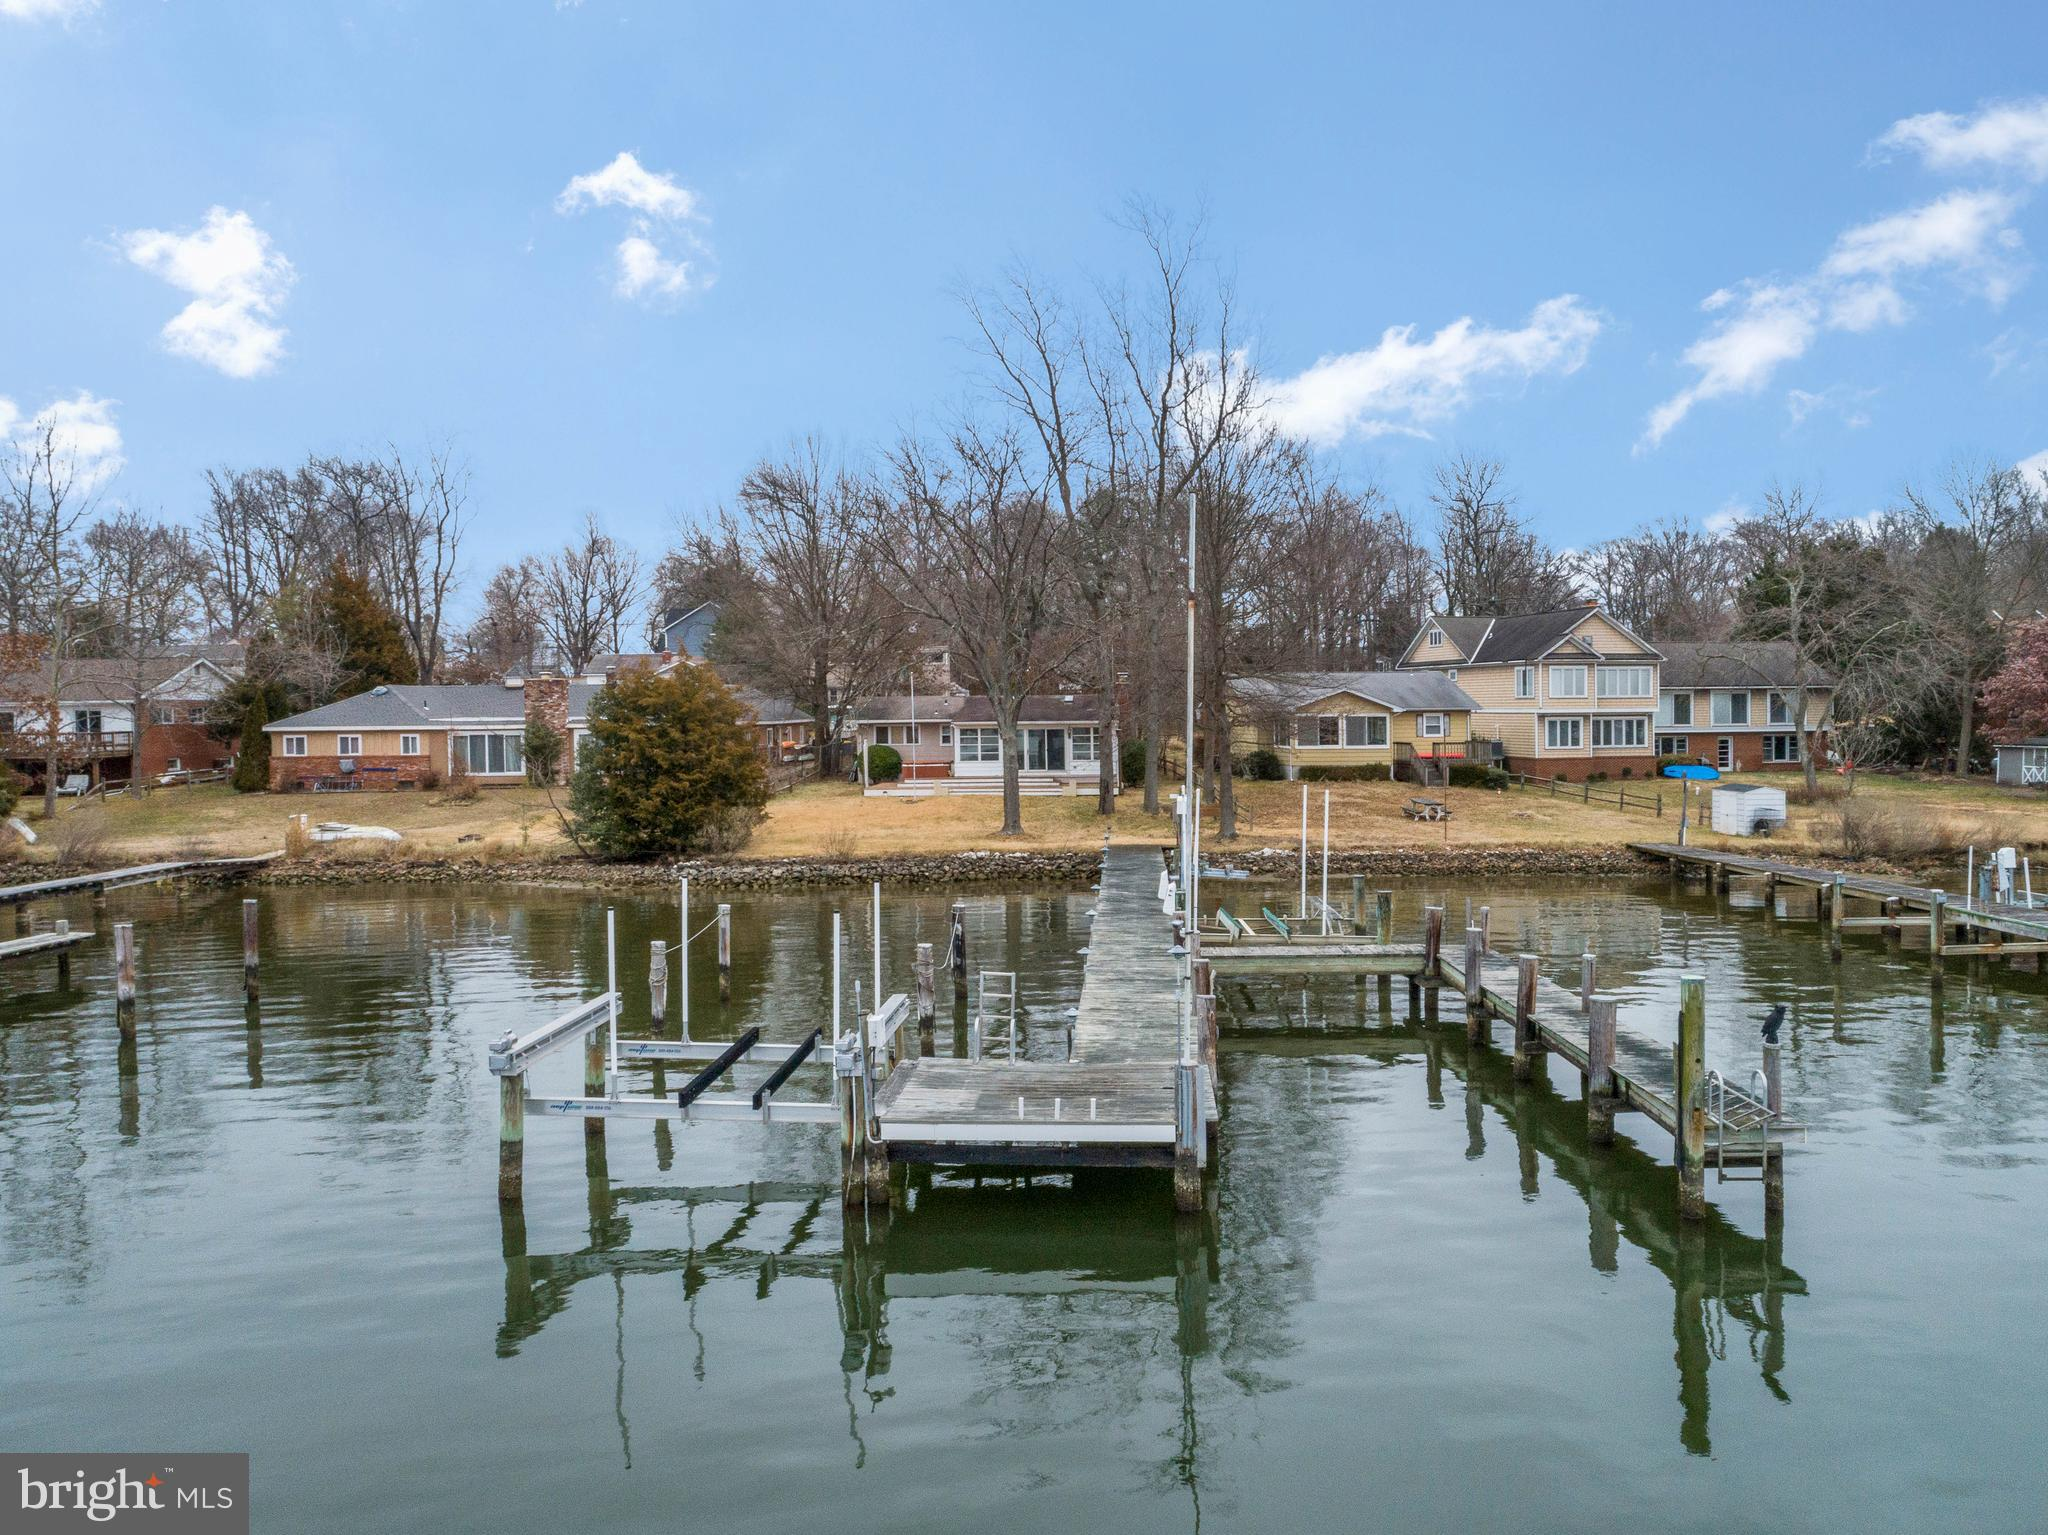 WATERFRONT in Loch Haven!  Here's your opportunity to vacation where you live!  Beautiful views of Brewer Creek and beyond to the South River.  Deep water at the private pier that can accommodate your sailboat, power boat or other water toys.     Just a quick ride on the boat out to the South River and Chesapeake Bay where you can enjoy fishing, water sports, cruising and waterfront restaurants.  One level cottage with loads of natural light.  Nice flat lot, sun room, family room with fireplace, kitchen with space for your table, 3 bedrooms, 3.5 bath, a large 2 car garage and shed for extra storage.  Community amenities help make this neighborhood so beloved -  including community marina, beach with swimming nets, boat ramp, kayak racks,  playground, basketball and tennis courts.  Great opportunity to update the current house, renovate to your liking or build new.   Sought after neighborhood, great water and blue ribbon schools! Come make this your new home!